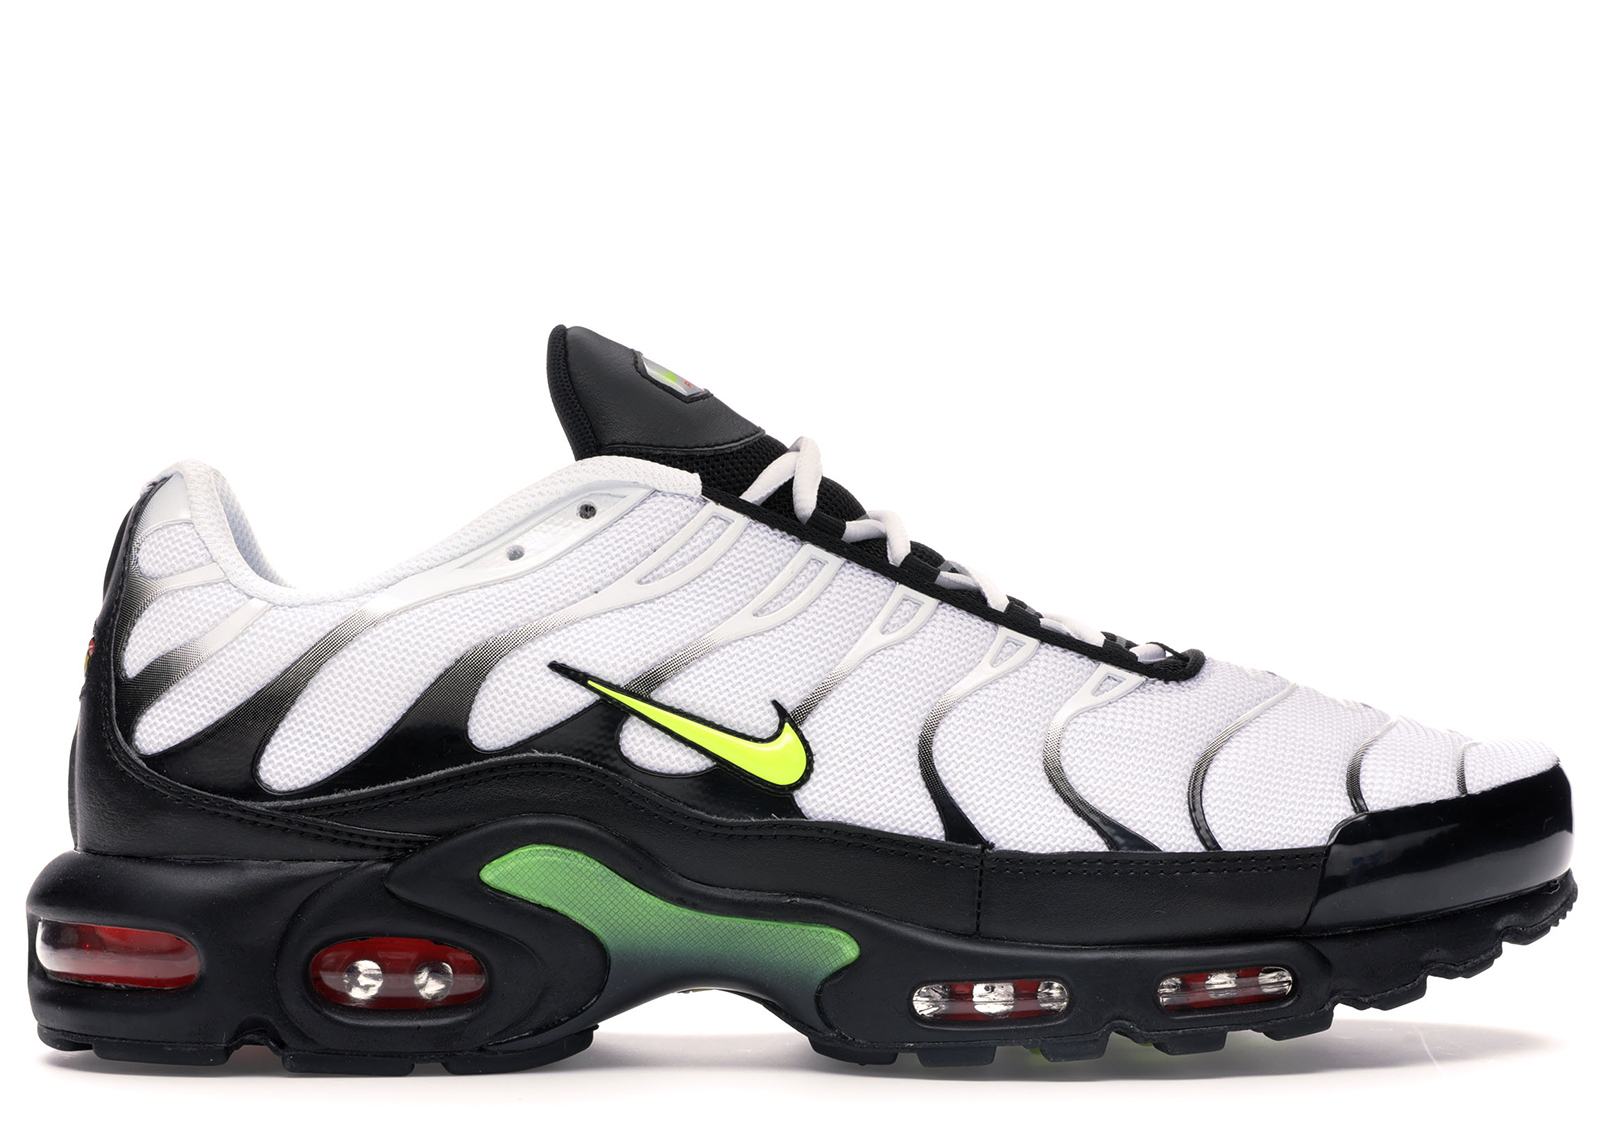 Air Max Plus Retro Future - AJ2013-100